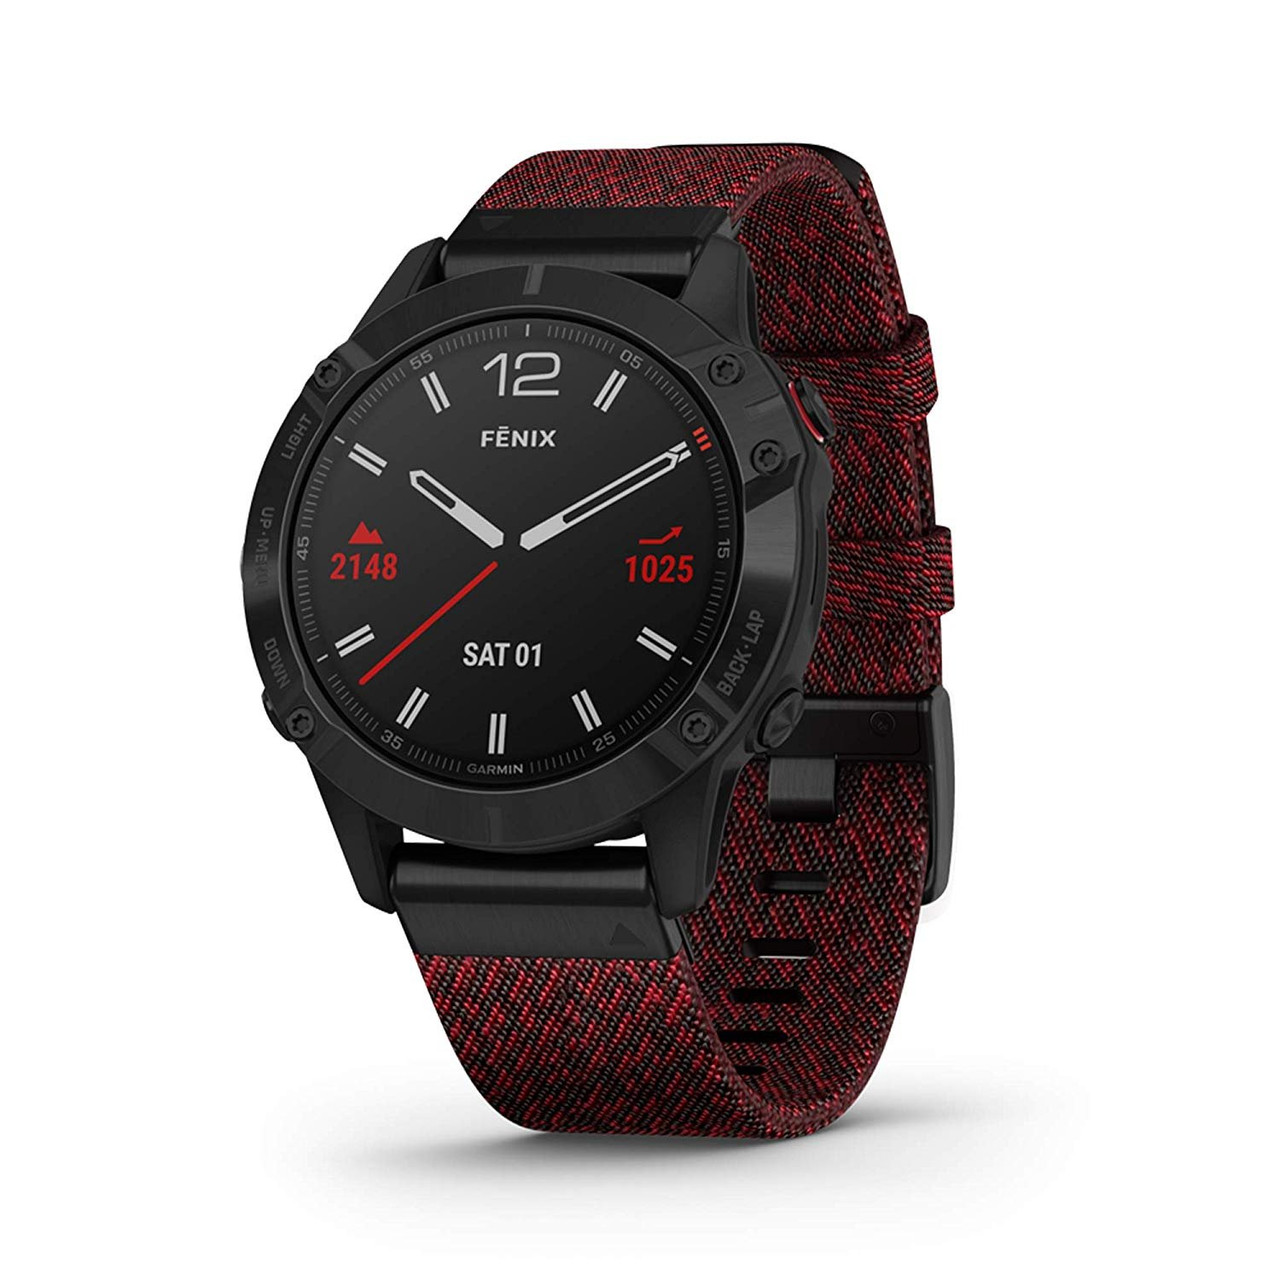 Garmin Fenix 6 Sapphire, Premium Multisport GPS Watch, Features Mapping,  Music, Grade-Adjusted Pace Guidance and Pulse Ox Sensors, Black with Red